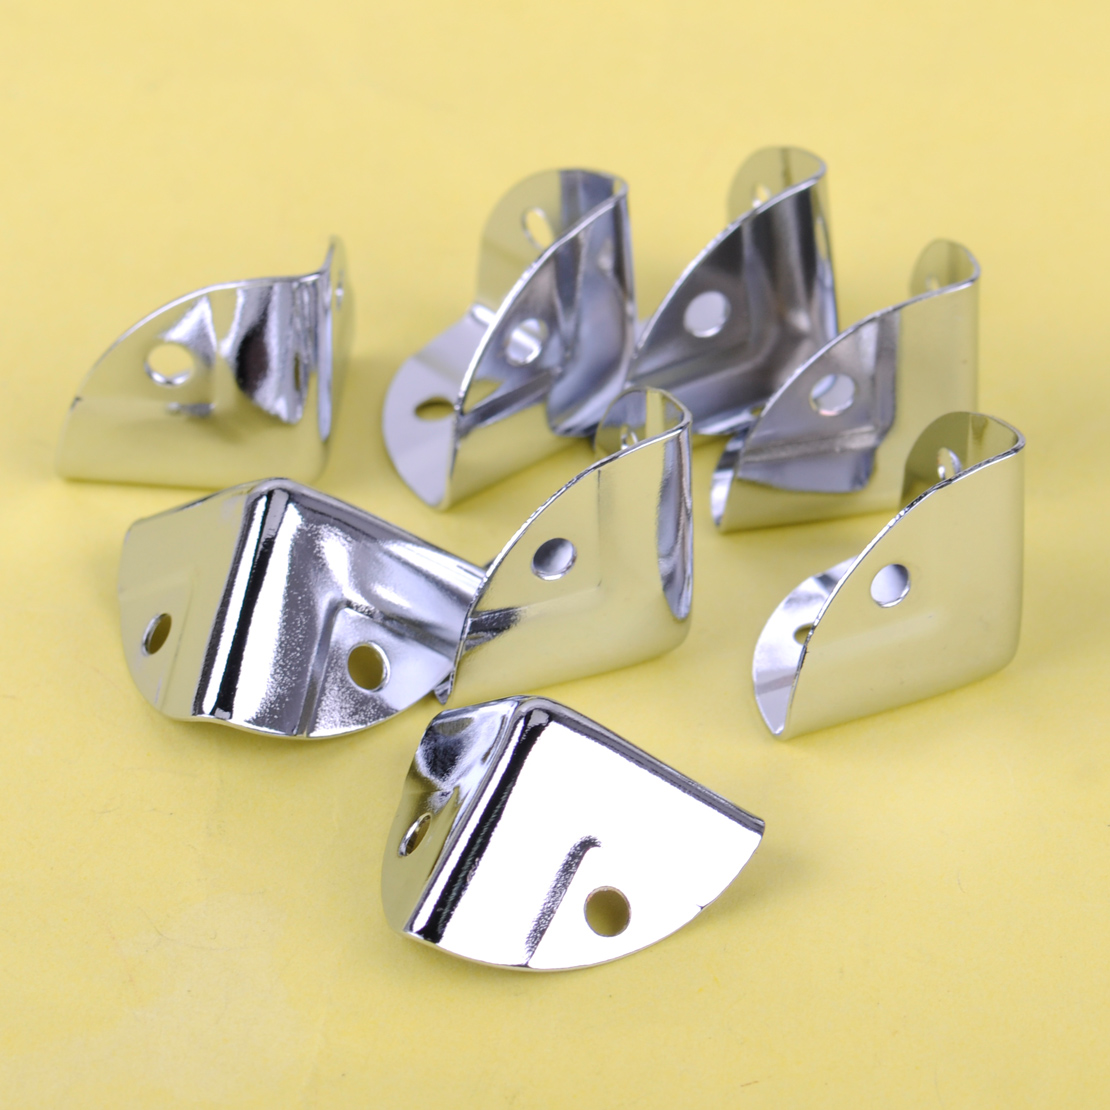 8pcs/set Metal Corner Bracket Angle Brace Protectors For Wooden Trunk Box Chest Flightcase